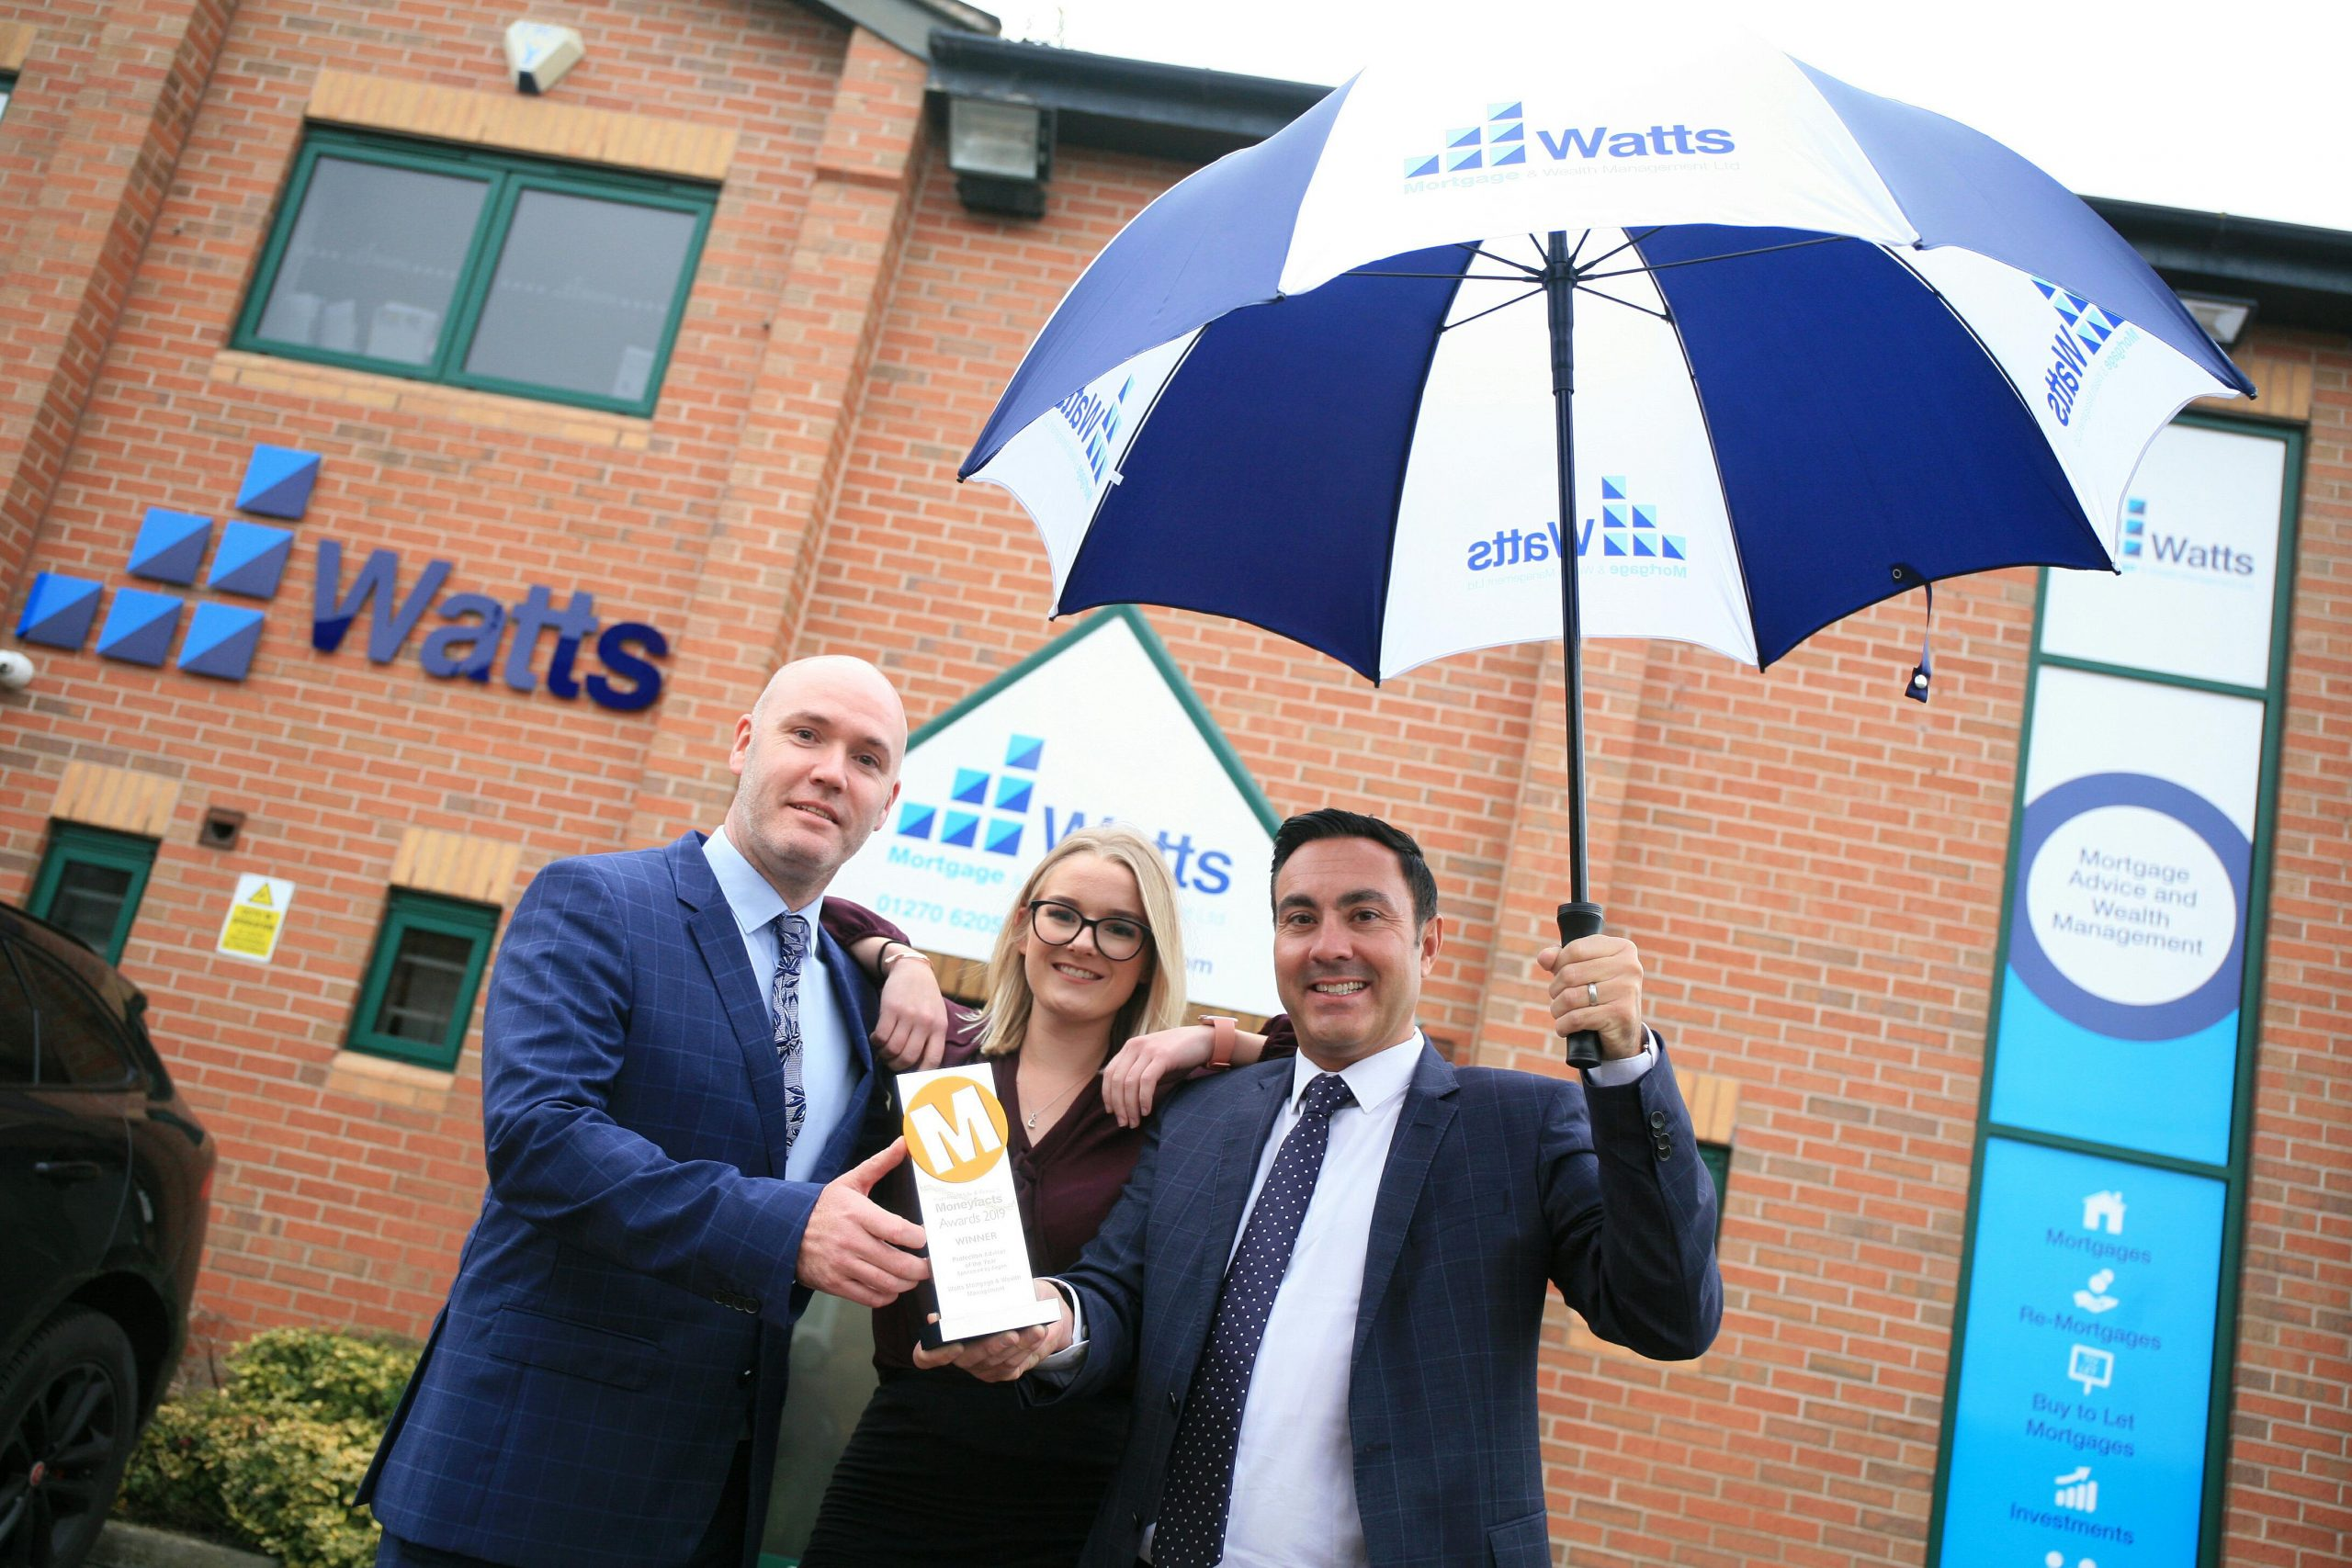 Watts Mortgage & Wealth Management retain coveted industry accolade - Independent Mortgage Advice & Broker Nantwich